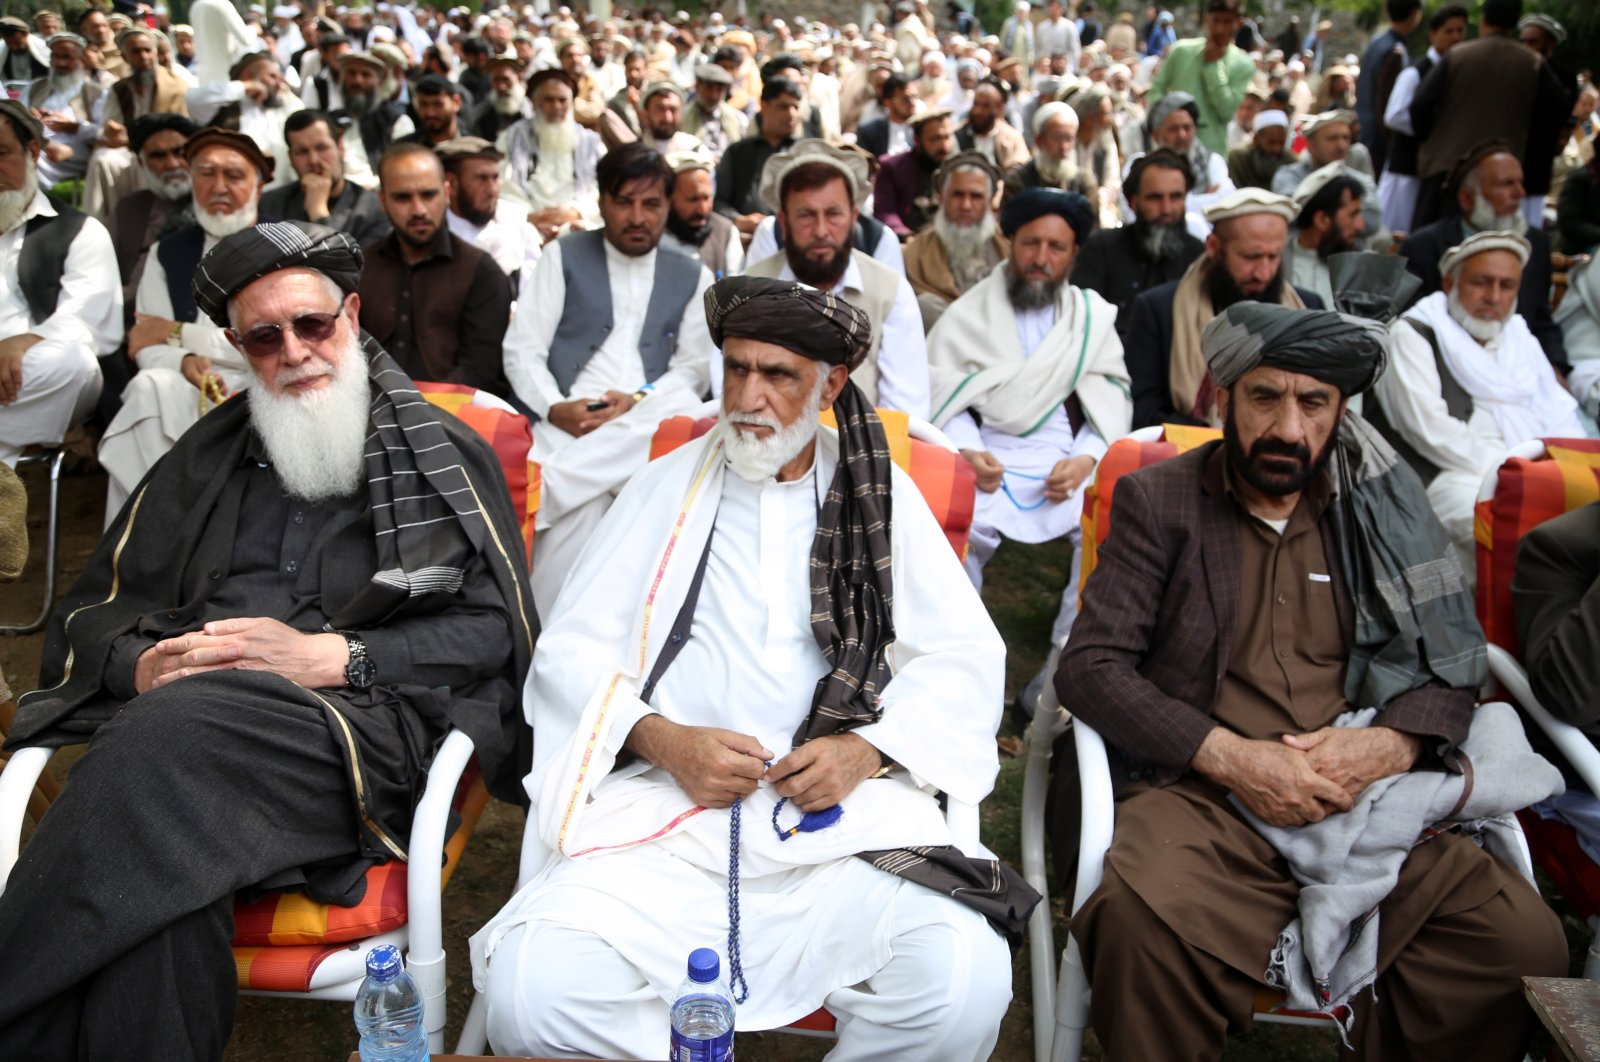 Afghans gather to discuss the aftermath of a proposal made in a letter by U.S. Secretary of State Antony Blinken to accelerate the ongoing peace negotiations with the Taliban, in Jalalabad, Afghanistan, March 13, 2021.  (EPA Photo)